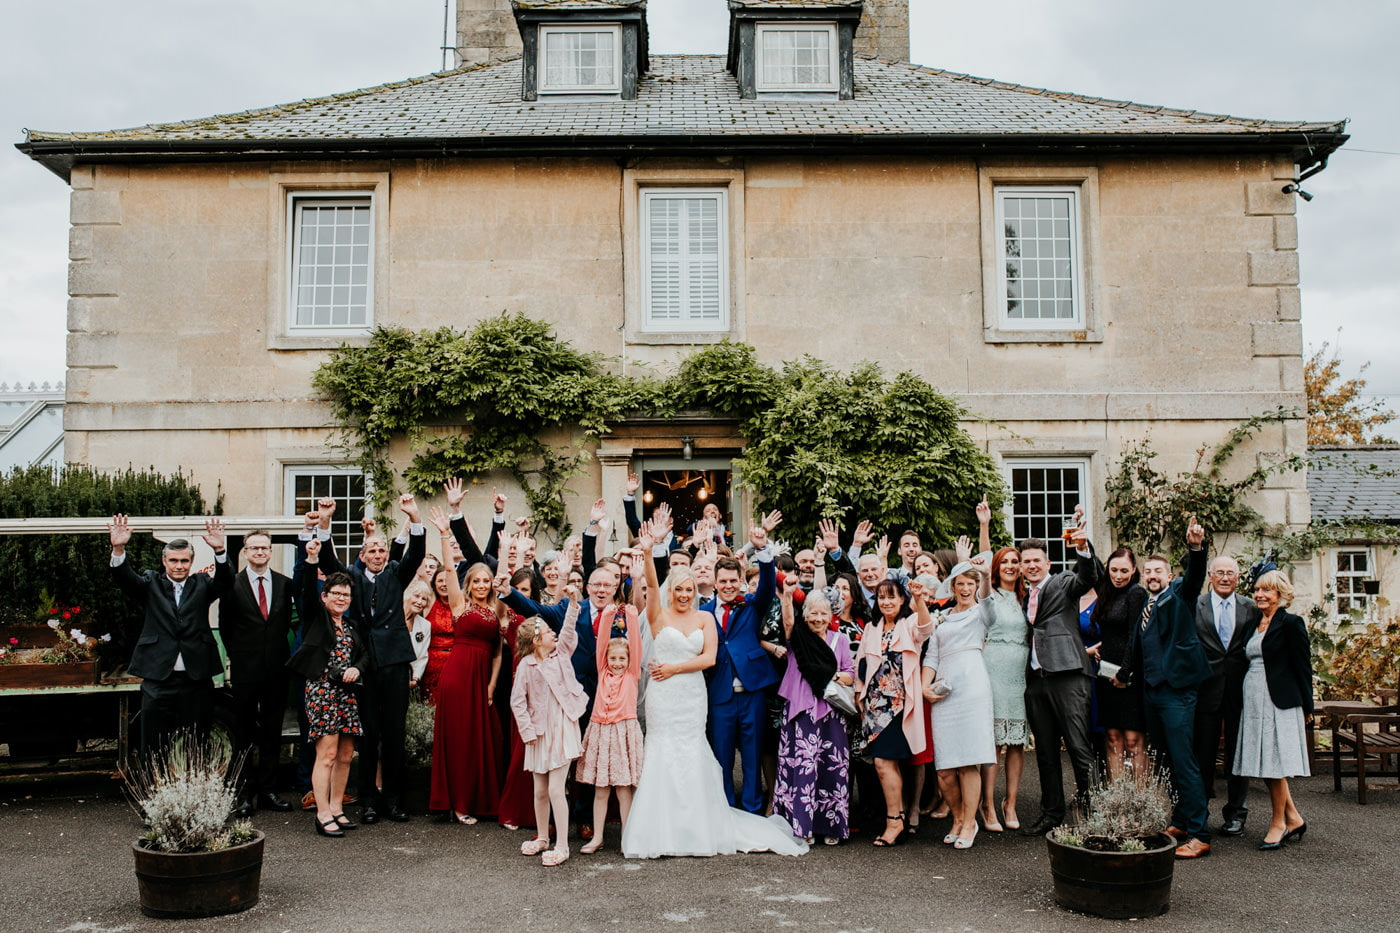 Natalie and Rob, Widbrook Grange, Wiltshire 80